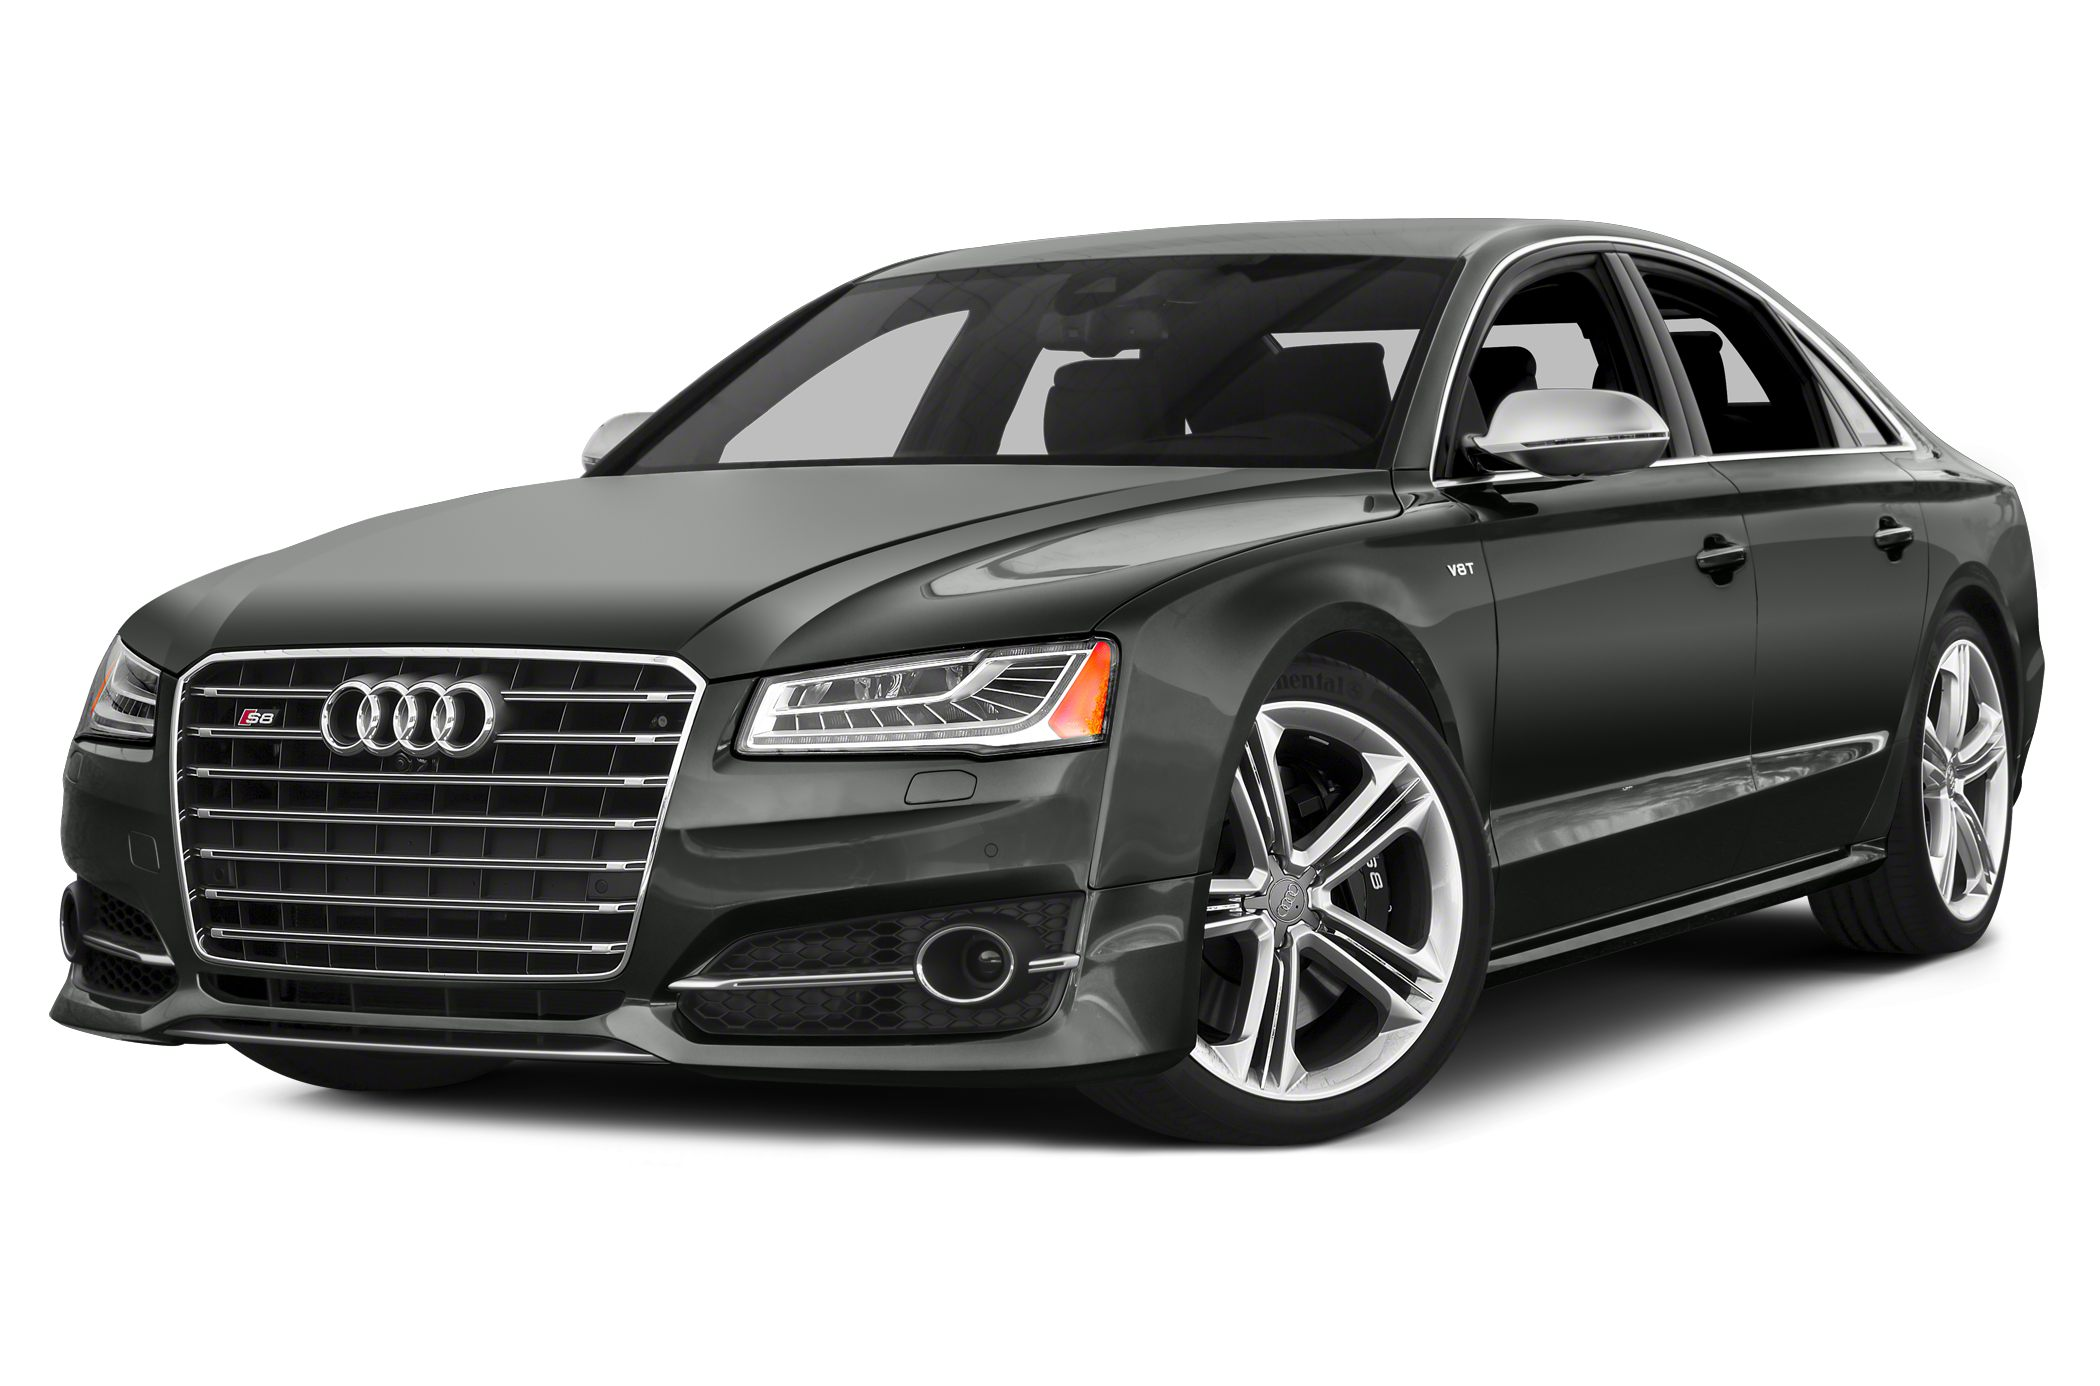 2015 Audi S8 4.0T Sedan for sale in Rochester for $119,545 with 46 miles.